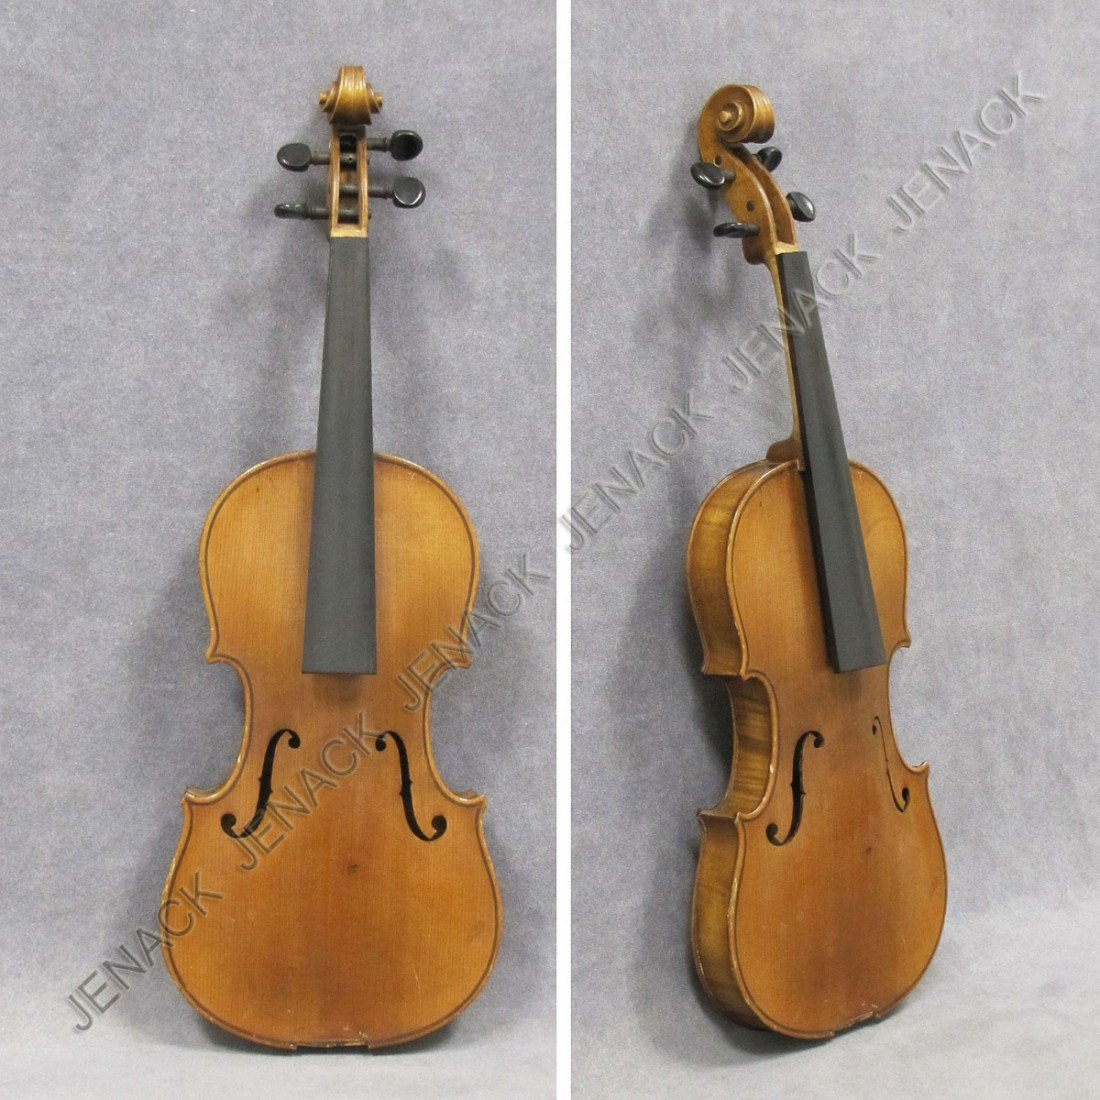 19: VINTAGE YOUTH'S HALF-SIZE VIOLIN, UNSIGNED